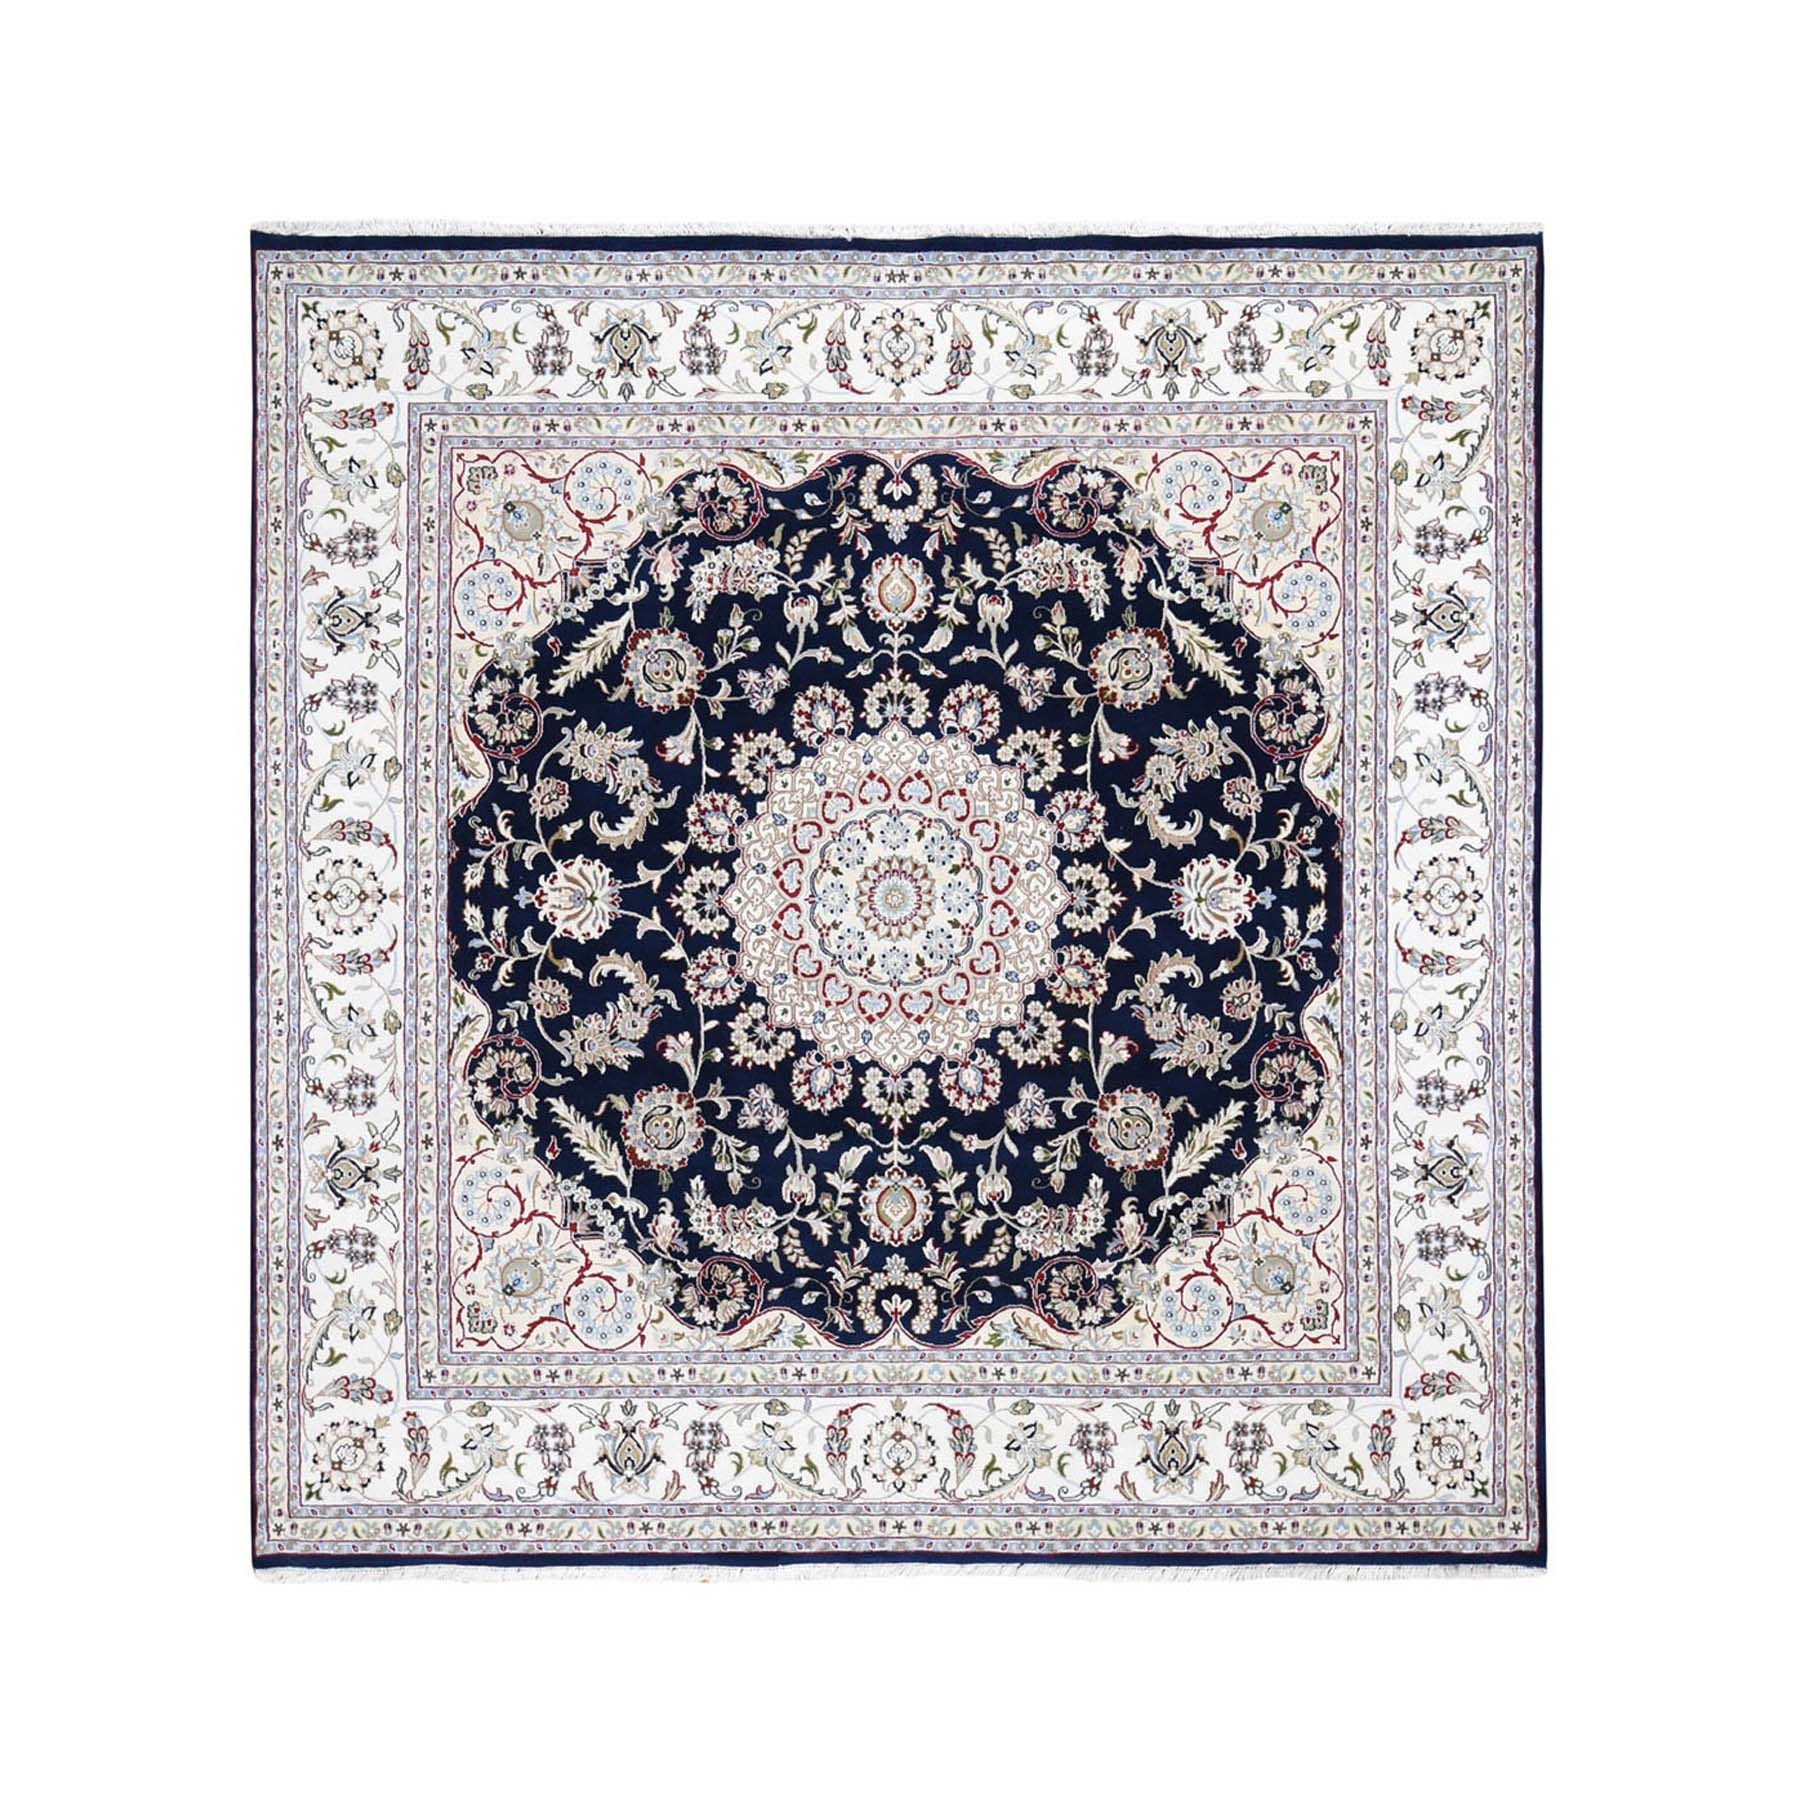 Pirniakan Collection Hand Knotted Blue Rug No: 1119970